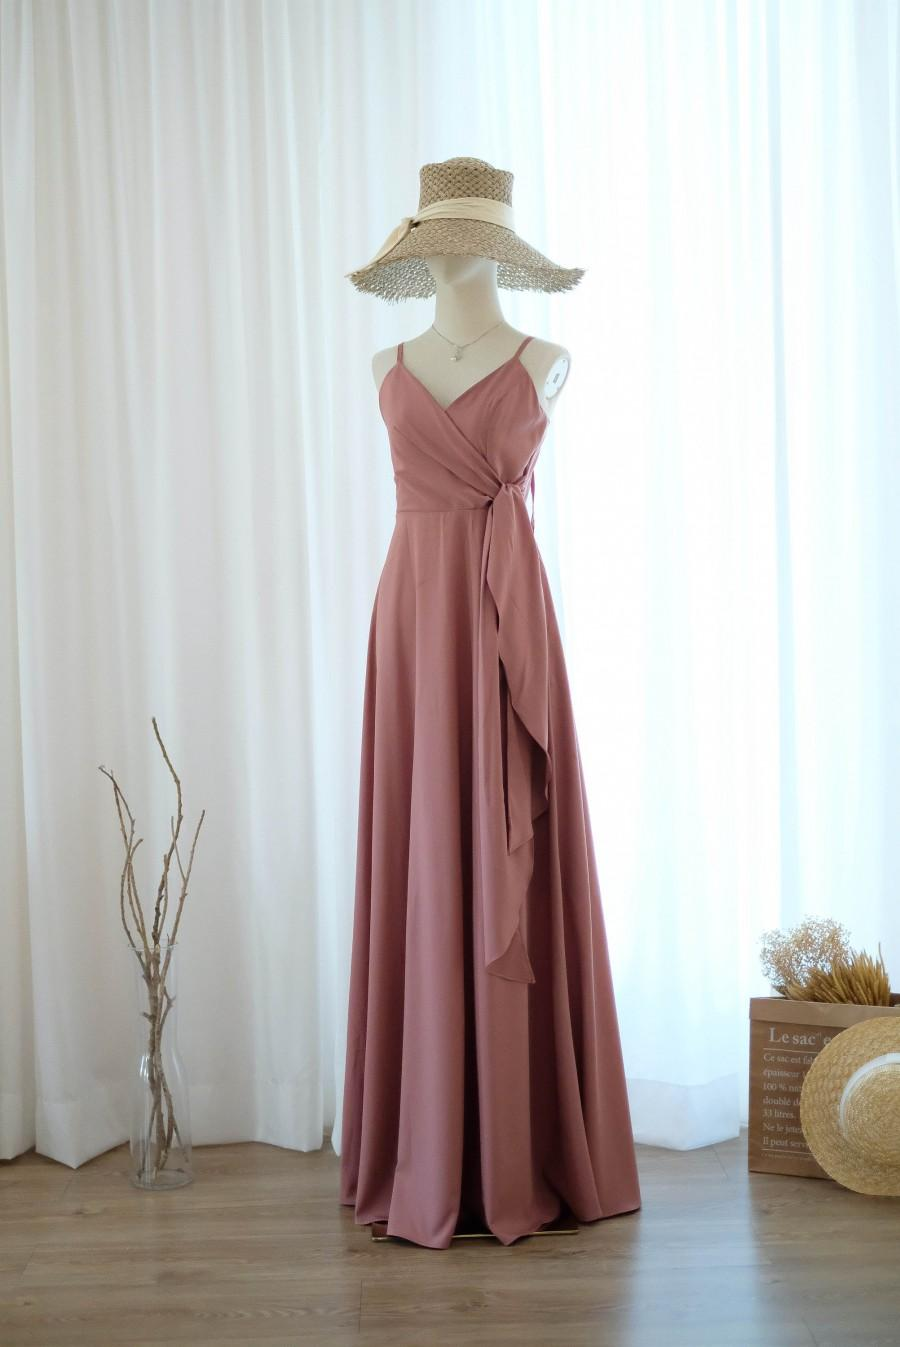 Wedding - English rose pink dress Maxi bridesmaid dresses party cocktail dress long party dress wedding guest simple bridesmaid robe